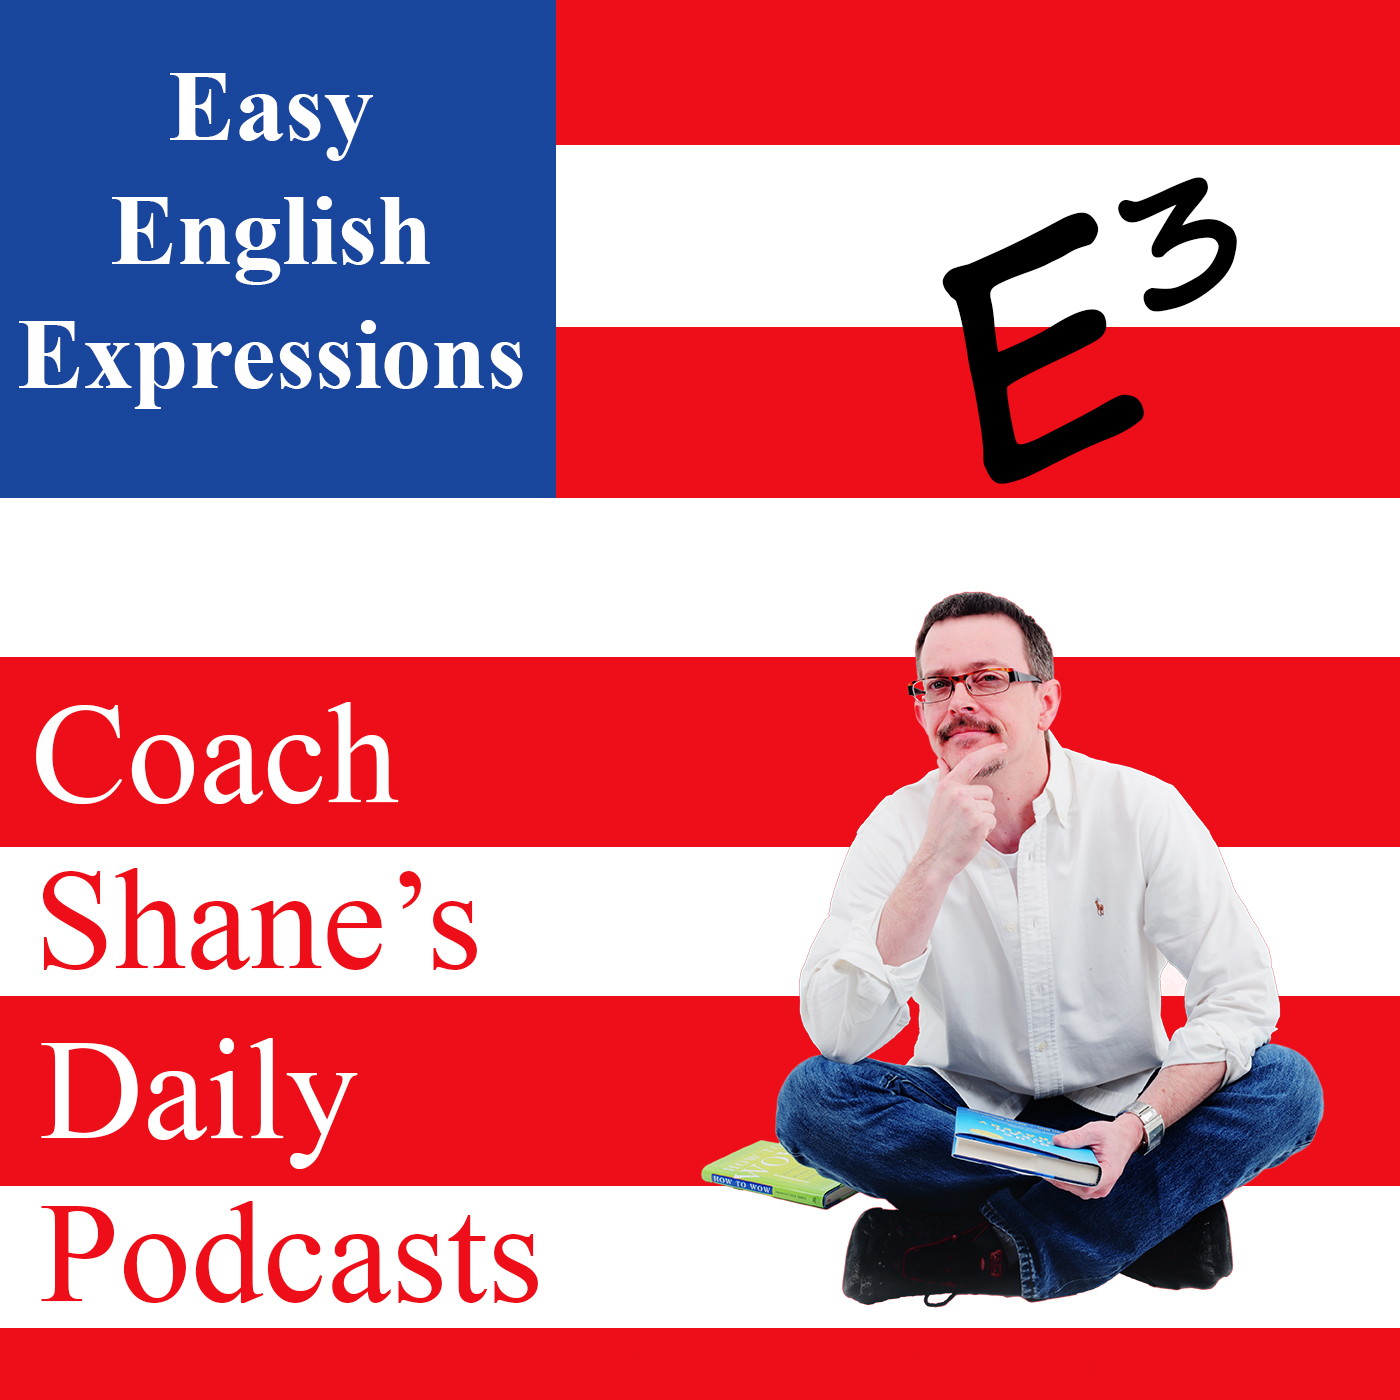 70 Daily Easy English Expression PODCAST—and whatnot